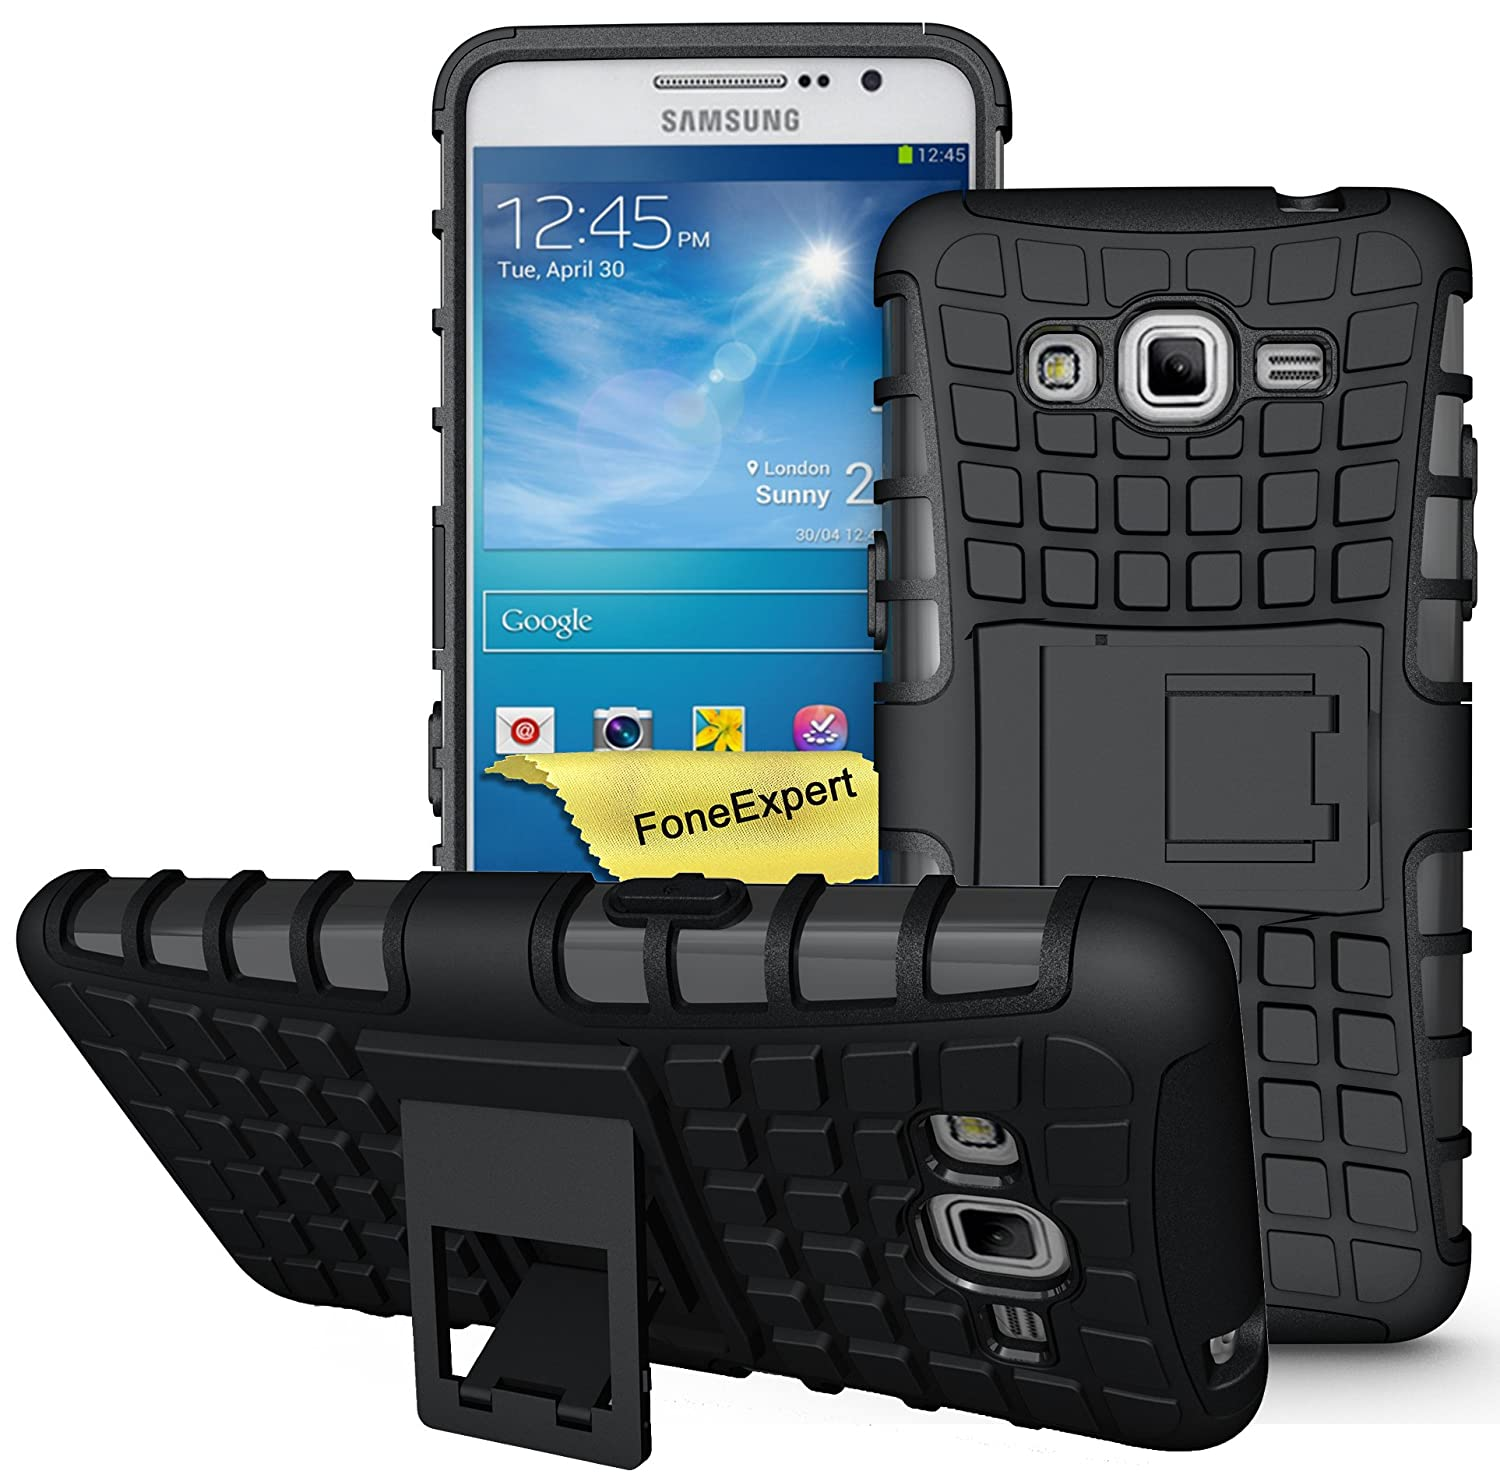 samsung reg product c ef case b rugged not cover h rug black protective included for phone smartphone galaxy